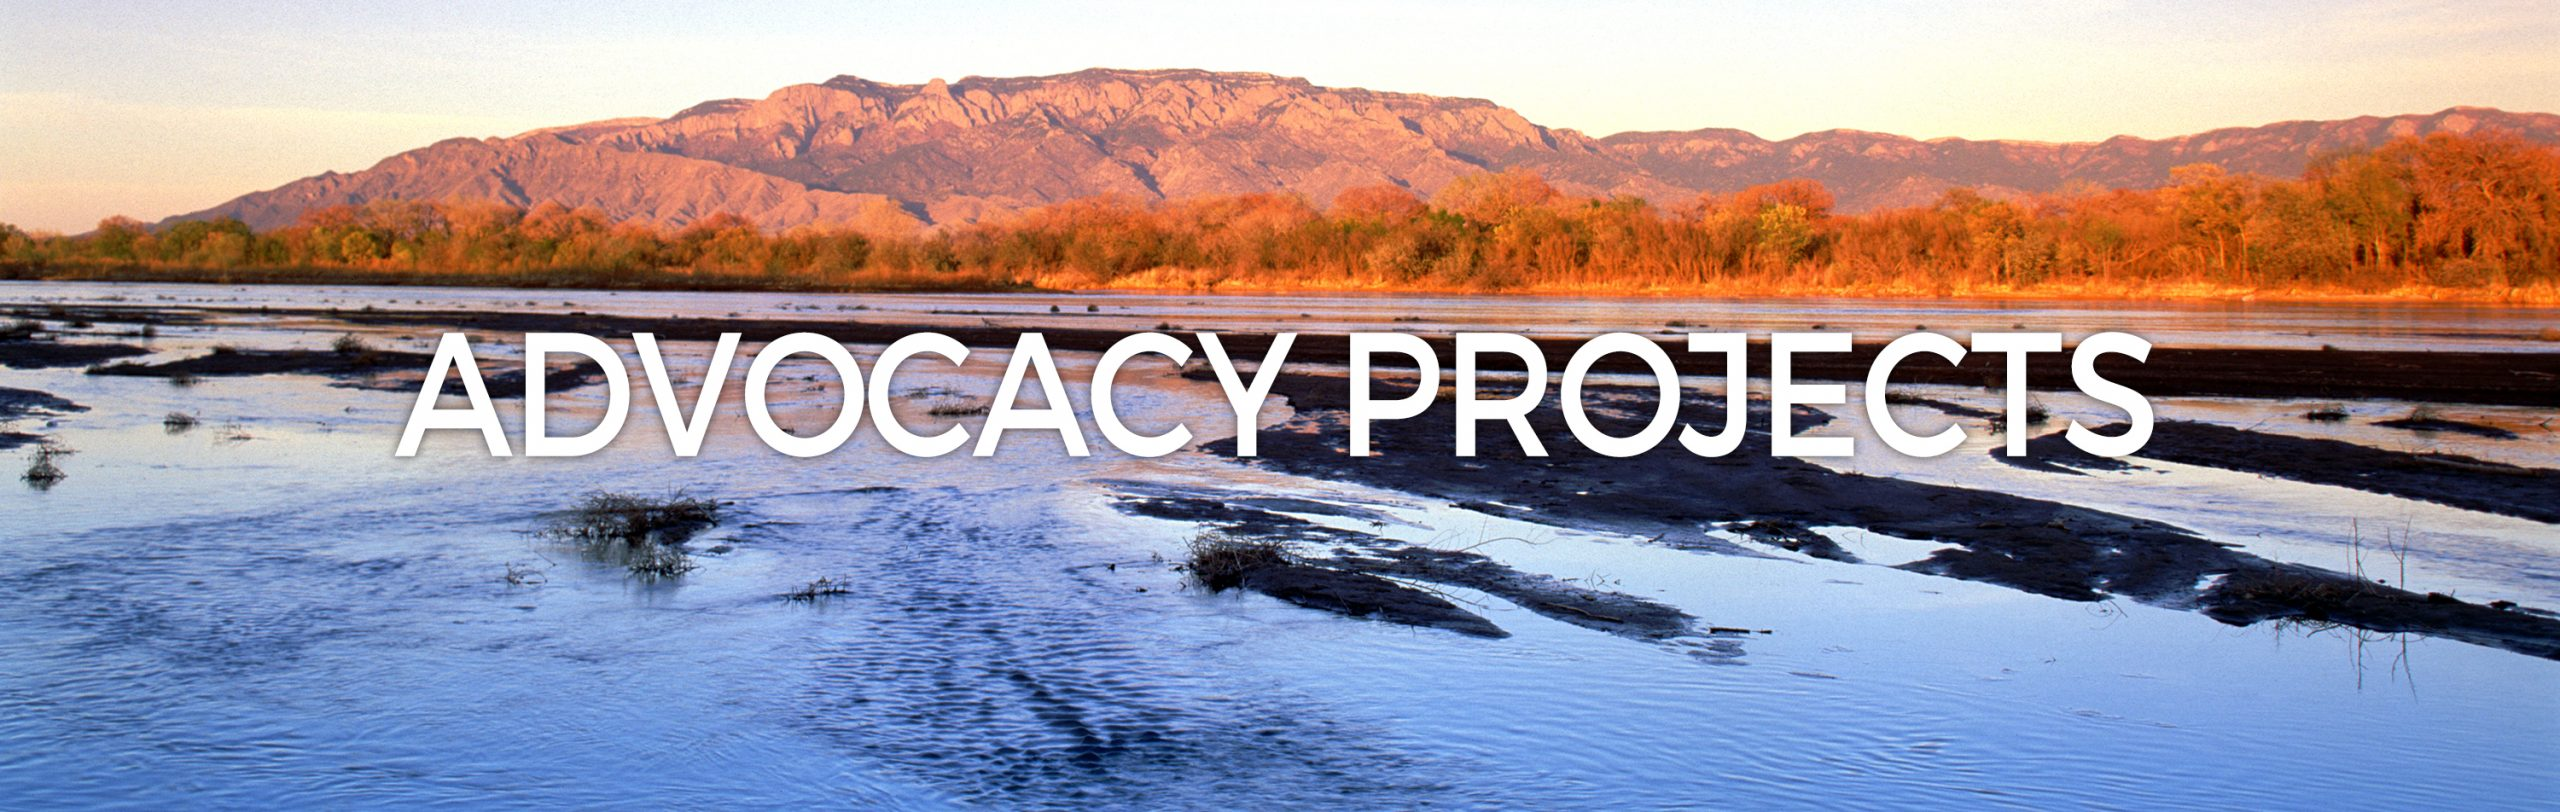 Advocacy Projects header